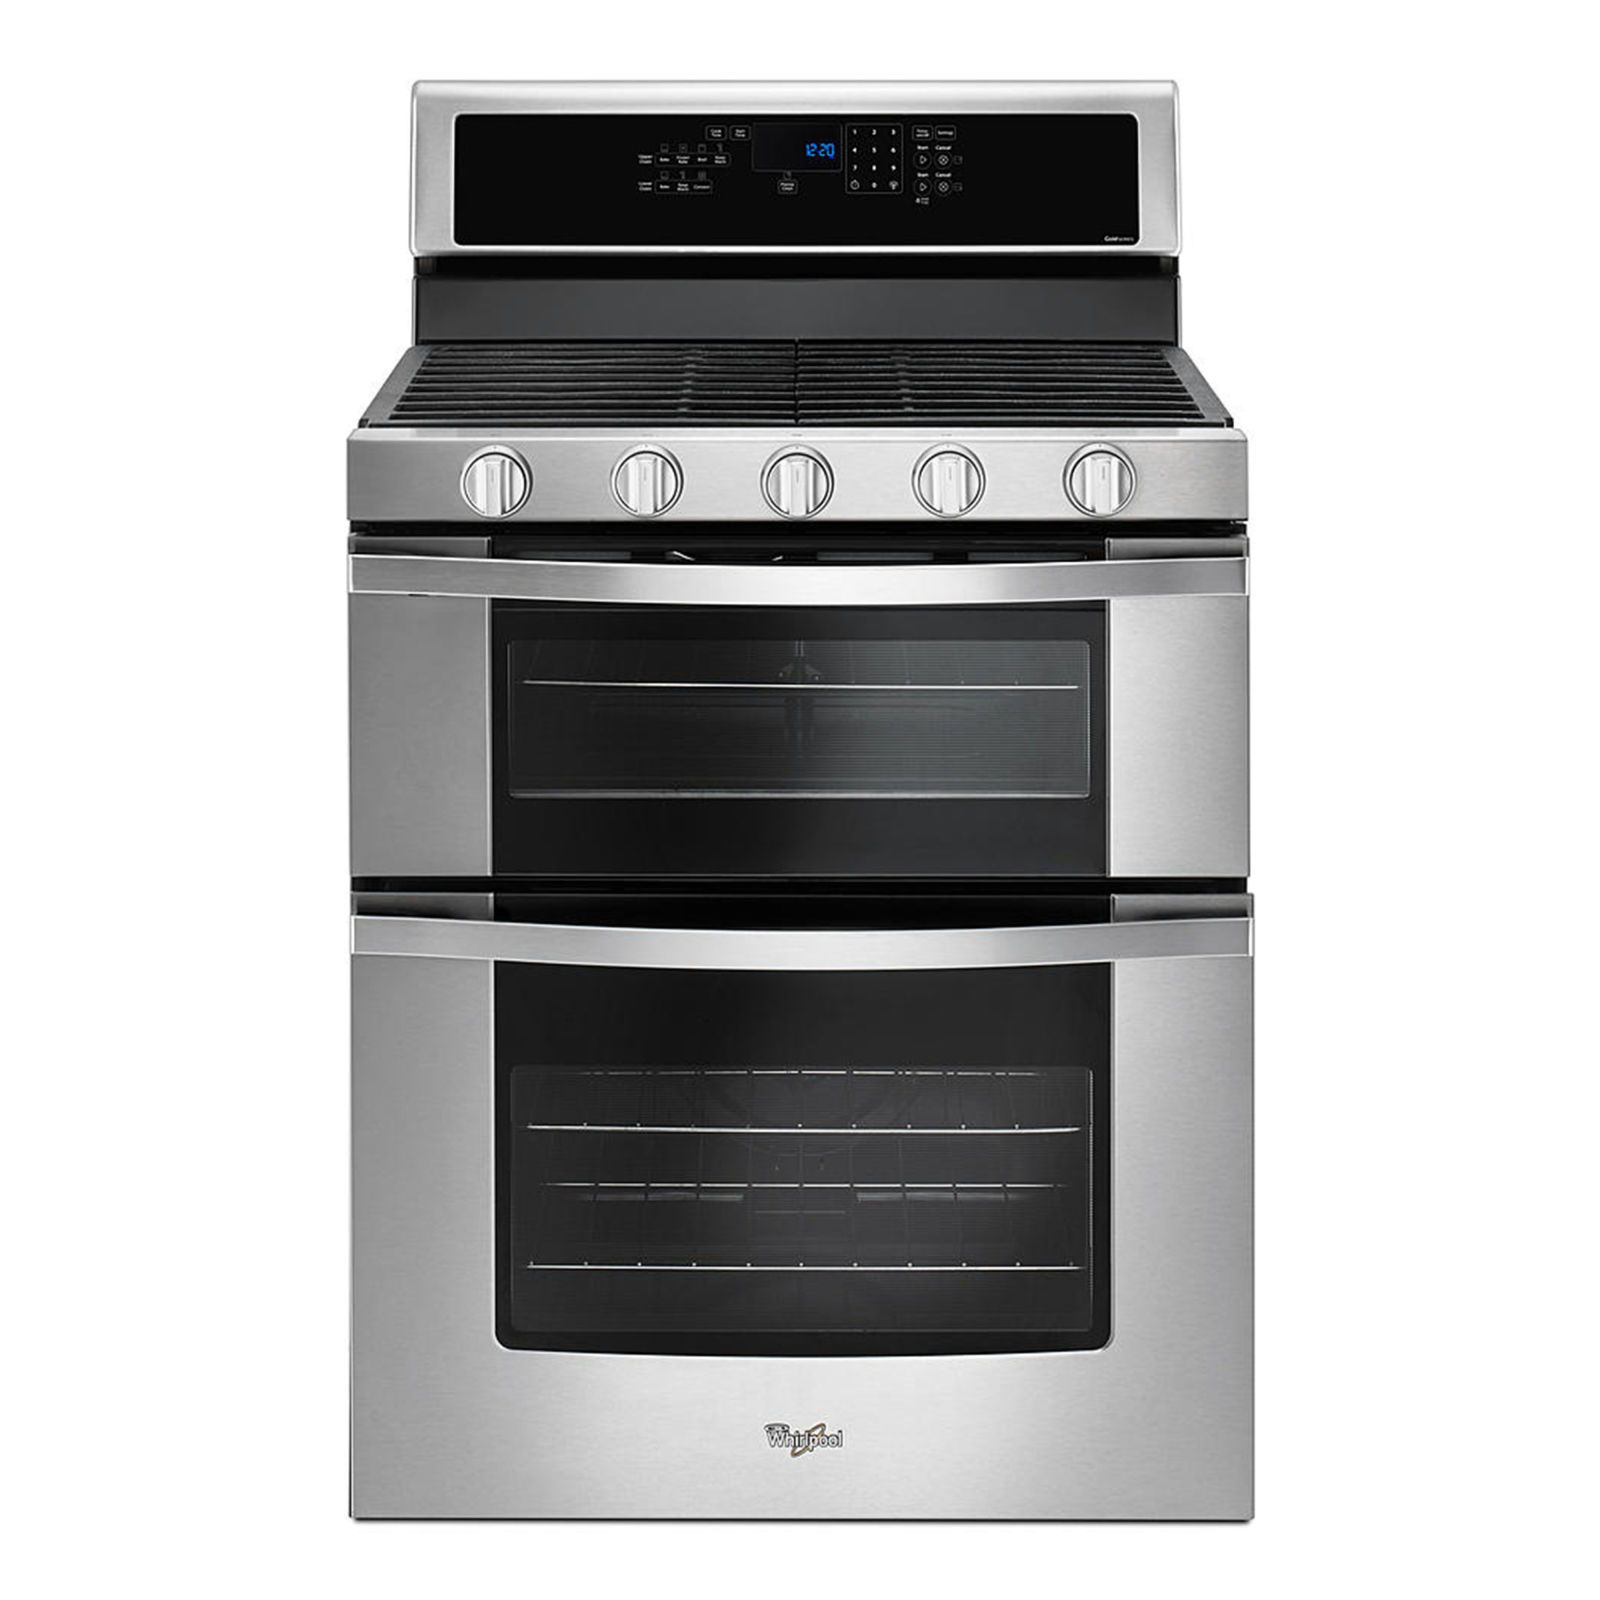 Whirlpool white ice costco - Whirlpool 6 0 Total Cu Ft Double Oven Gas Range With Accubake System Wgg555sobs